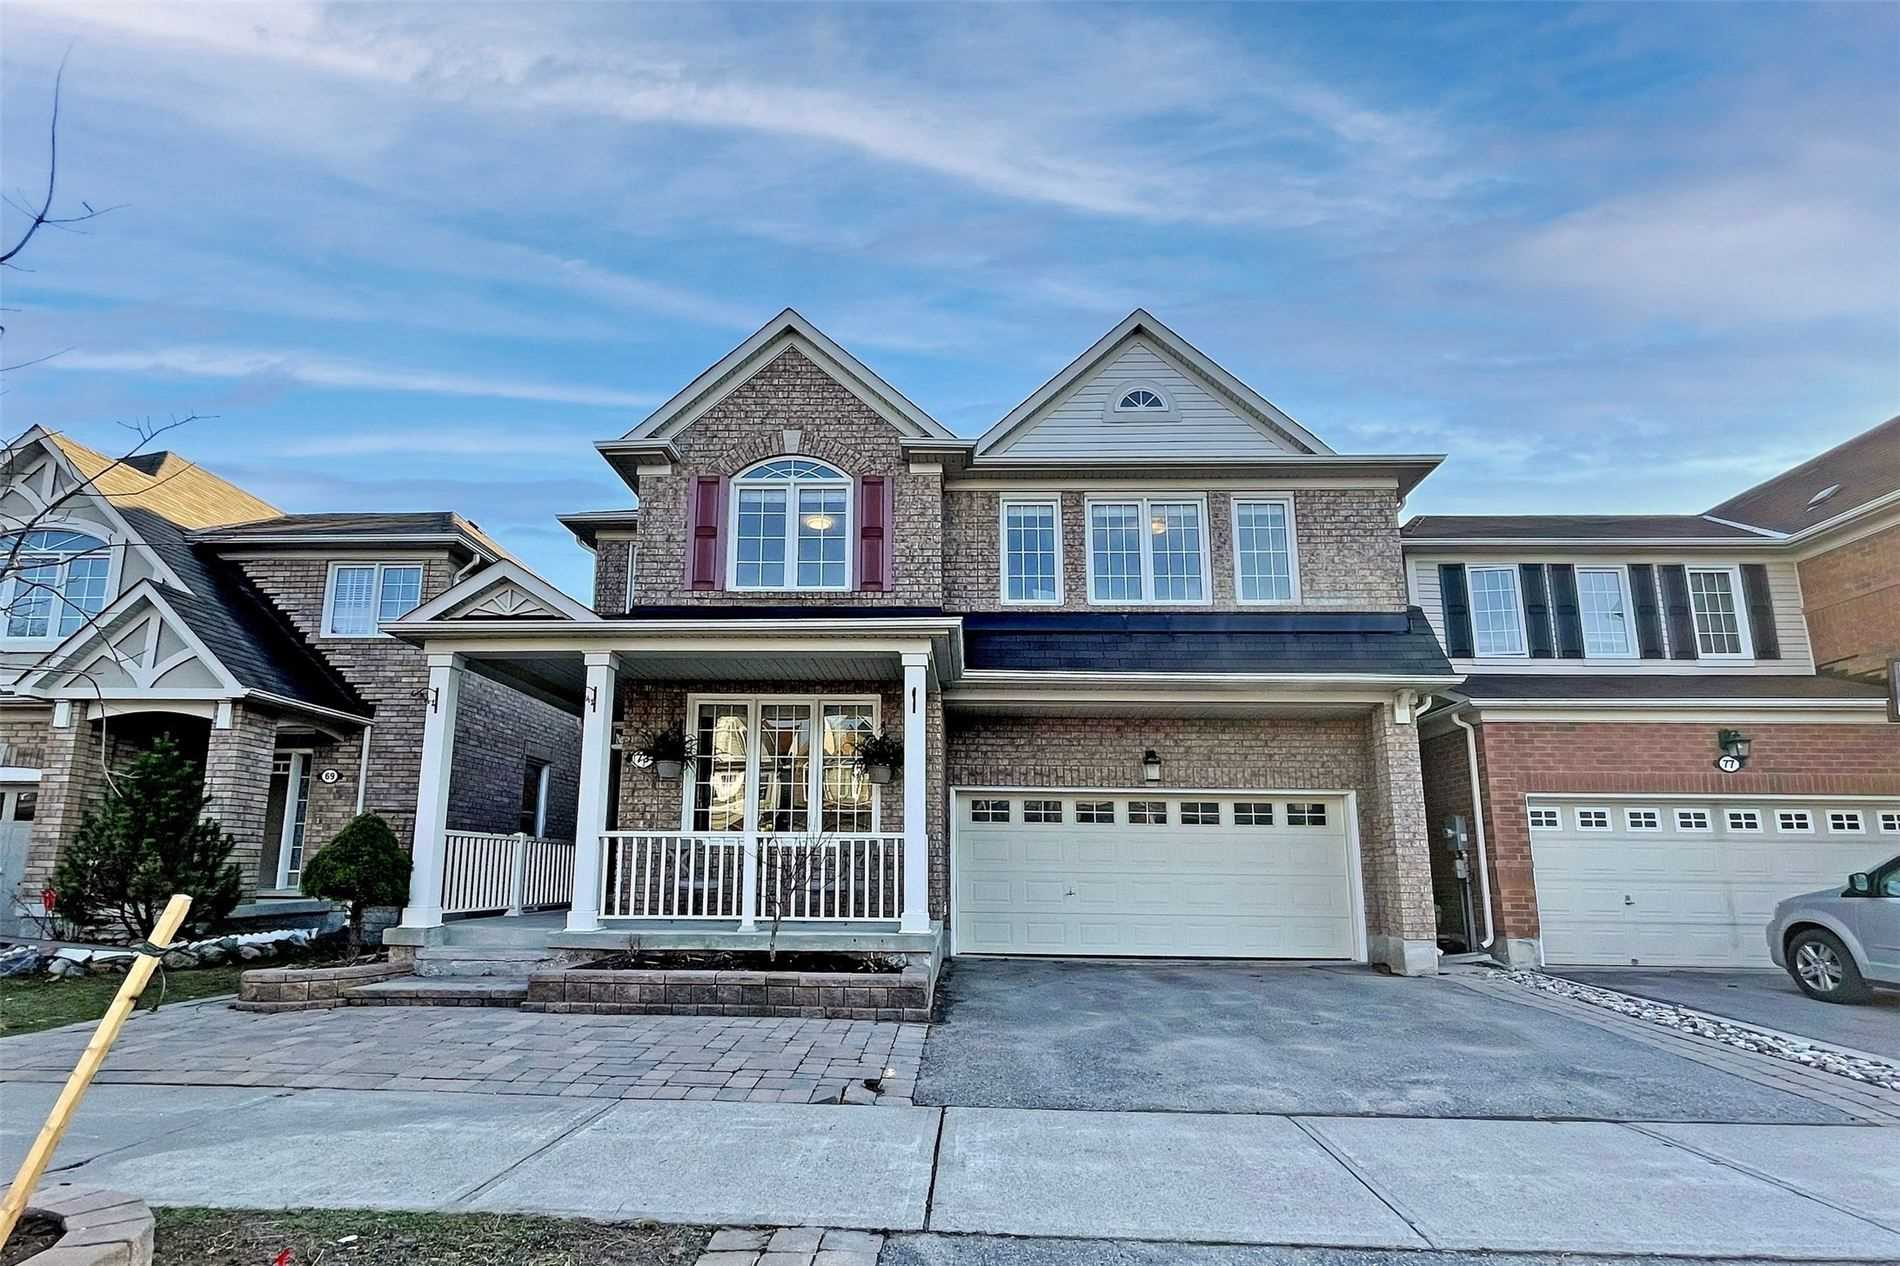 73 Fred Silvester Rd - N5186175- $1,188,000